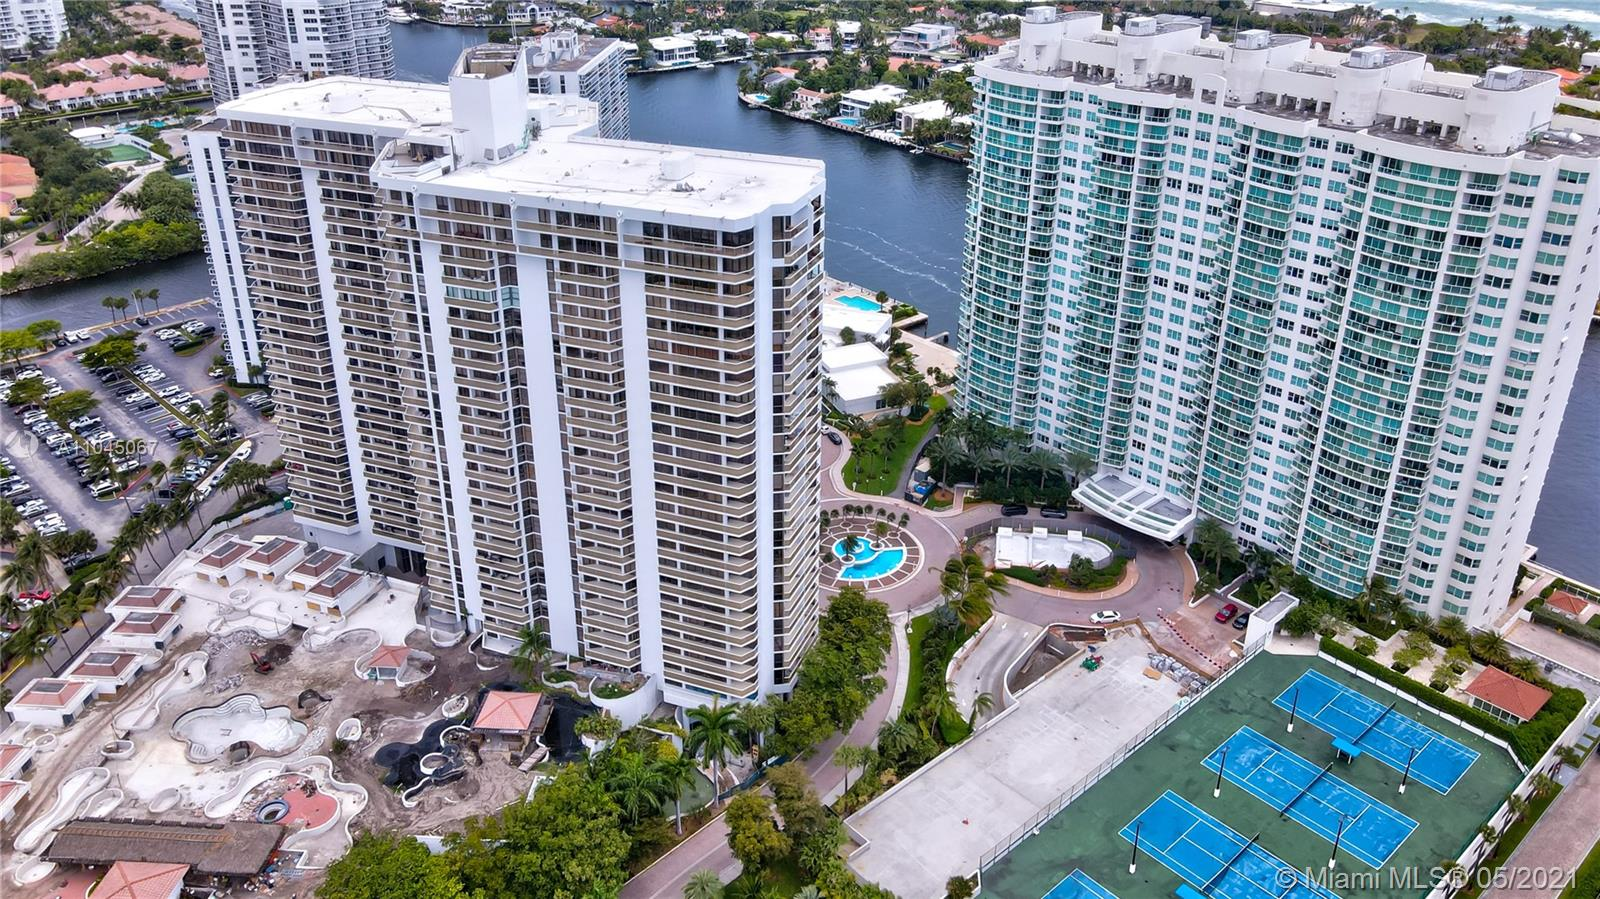 Photo of 20281 Country Club Dr #314, Aventura, Florida, 33180 - Hamptons West Condo - pool deck area, located on top of the parking garage, is currently under renovation.